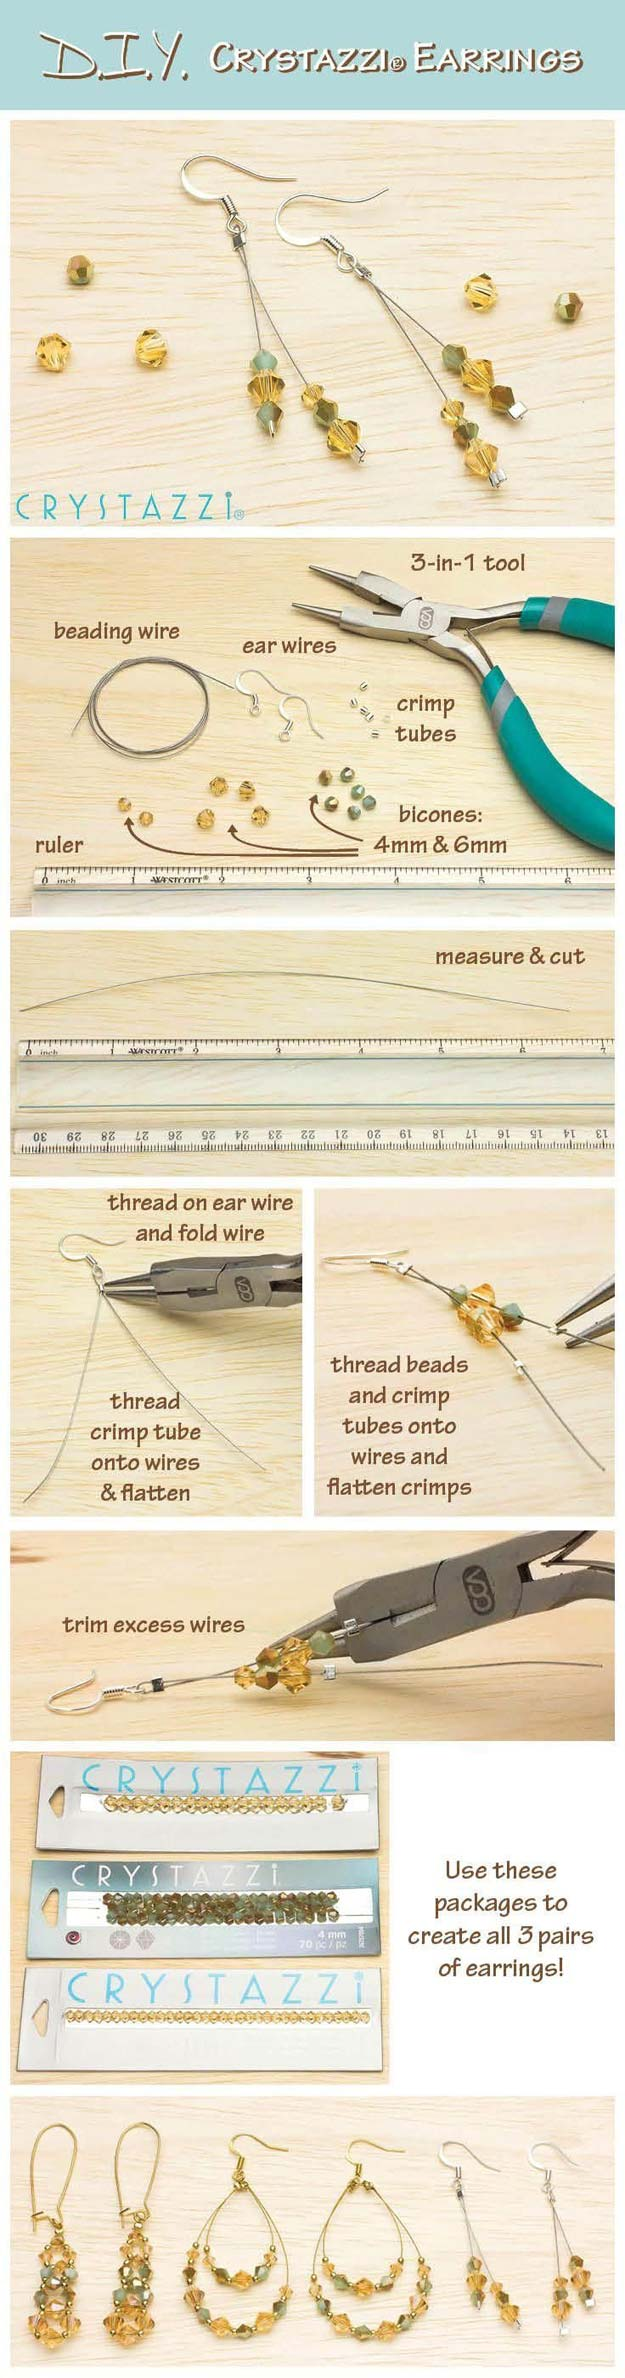 Crafts to Make and Sell - DIY Crystazzi Earrings - Easy Step by Step Tutorials for Fun, Cool and Creative Ways for Teenagers to Make Money Selling Stuff - Room Decor, Accessories, Gifts and More http://diyprojectsforteens.com/diy-crafts-to-make-and-sell